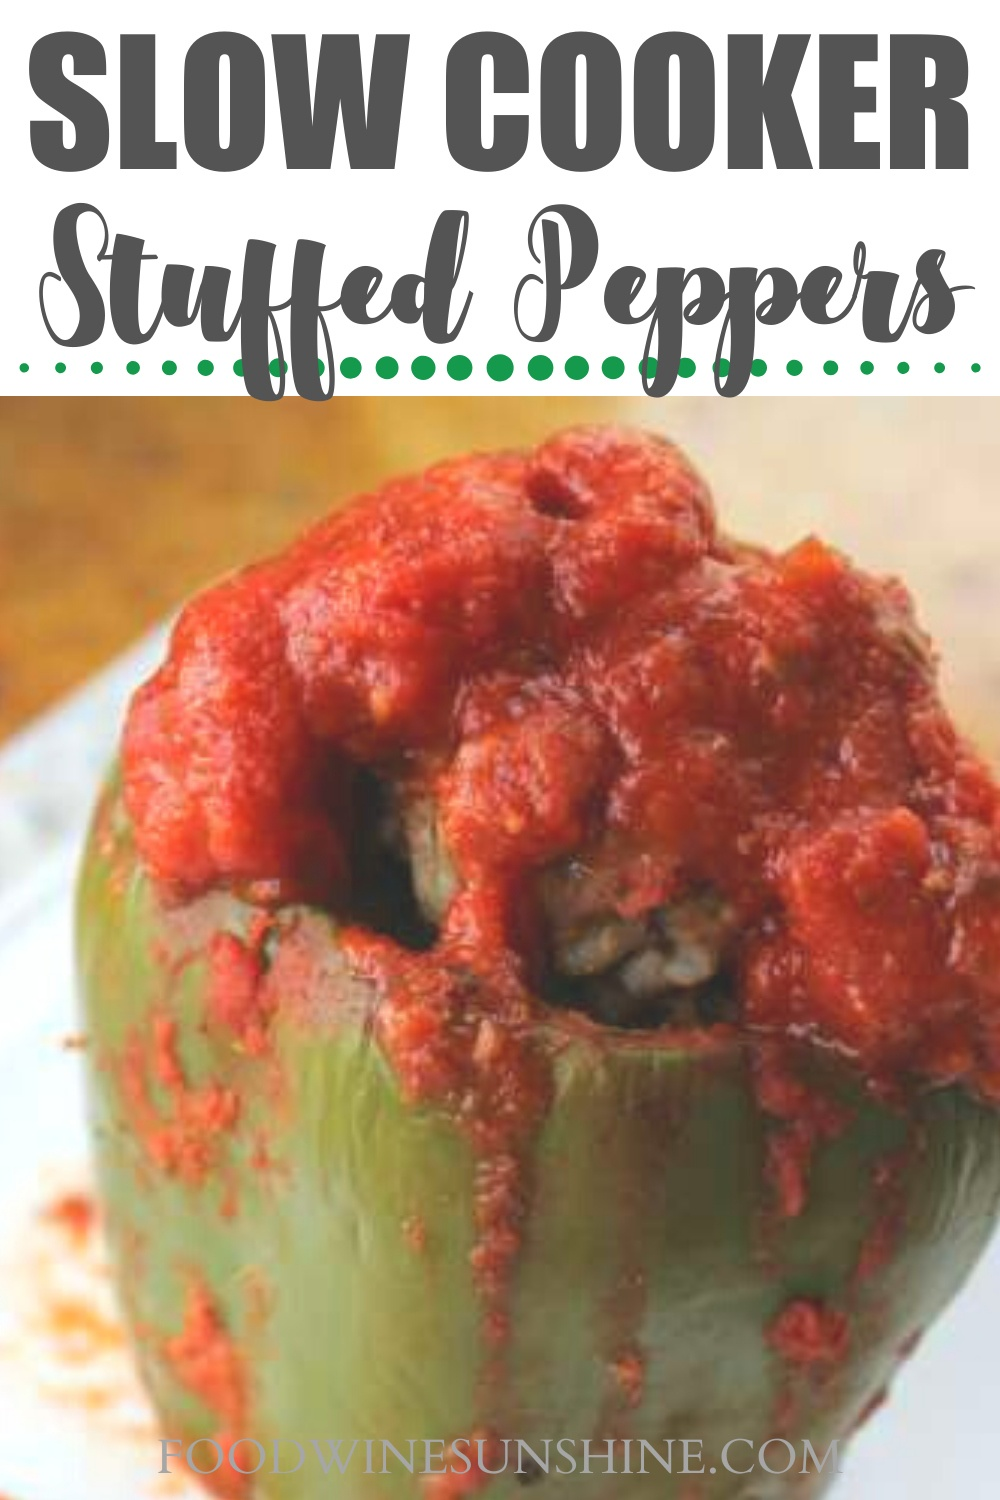 Best Slow Cooker Stuffed Peppers